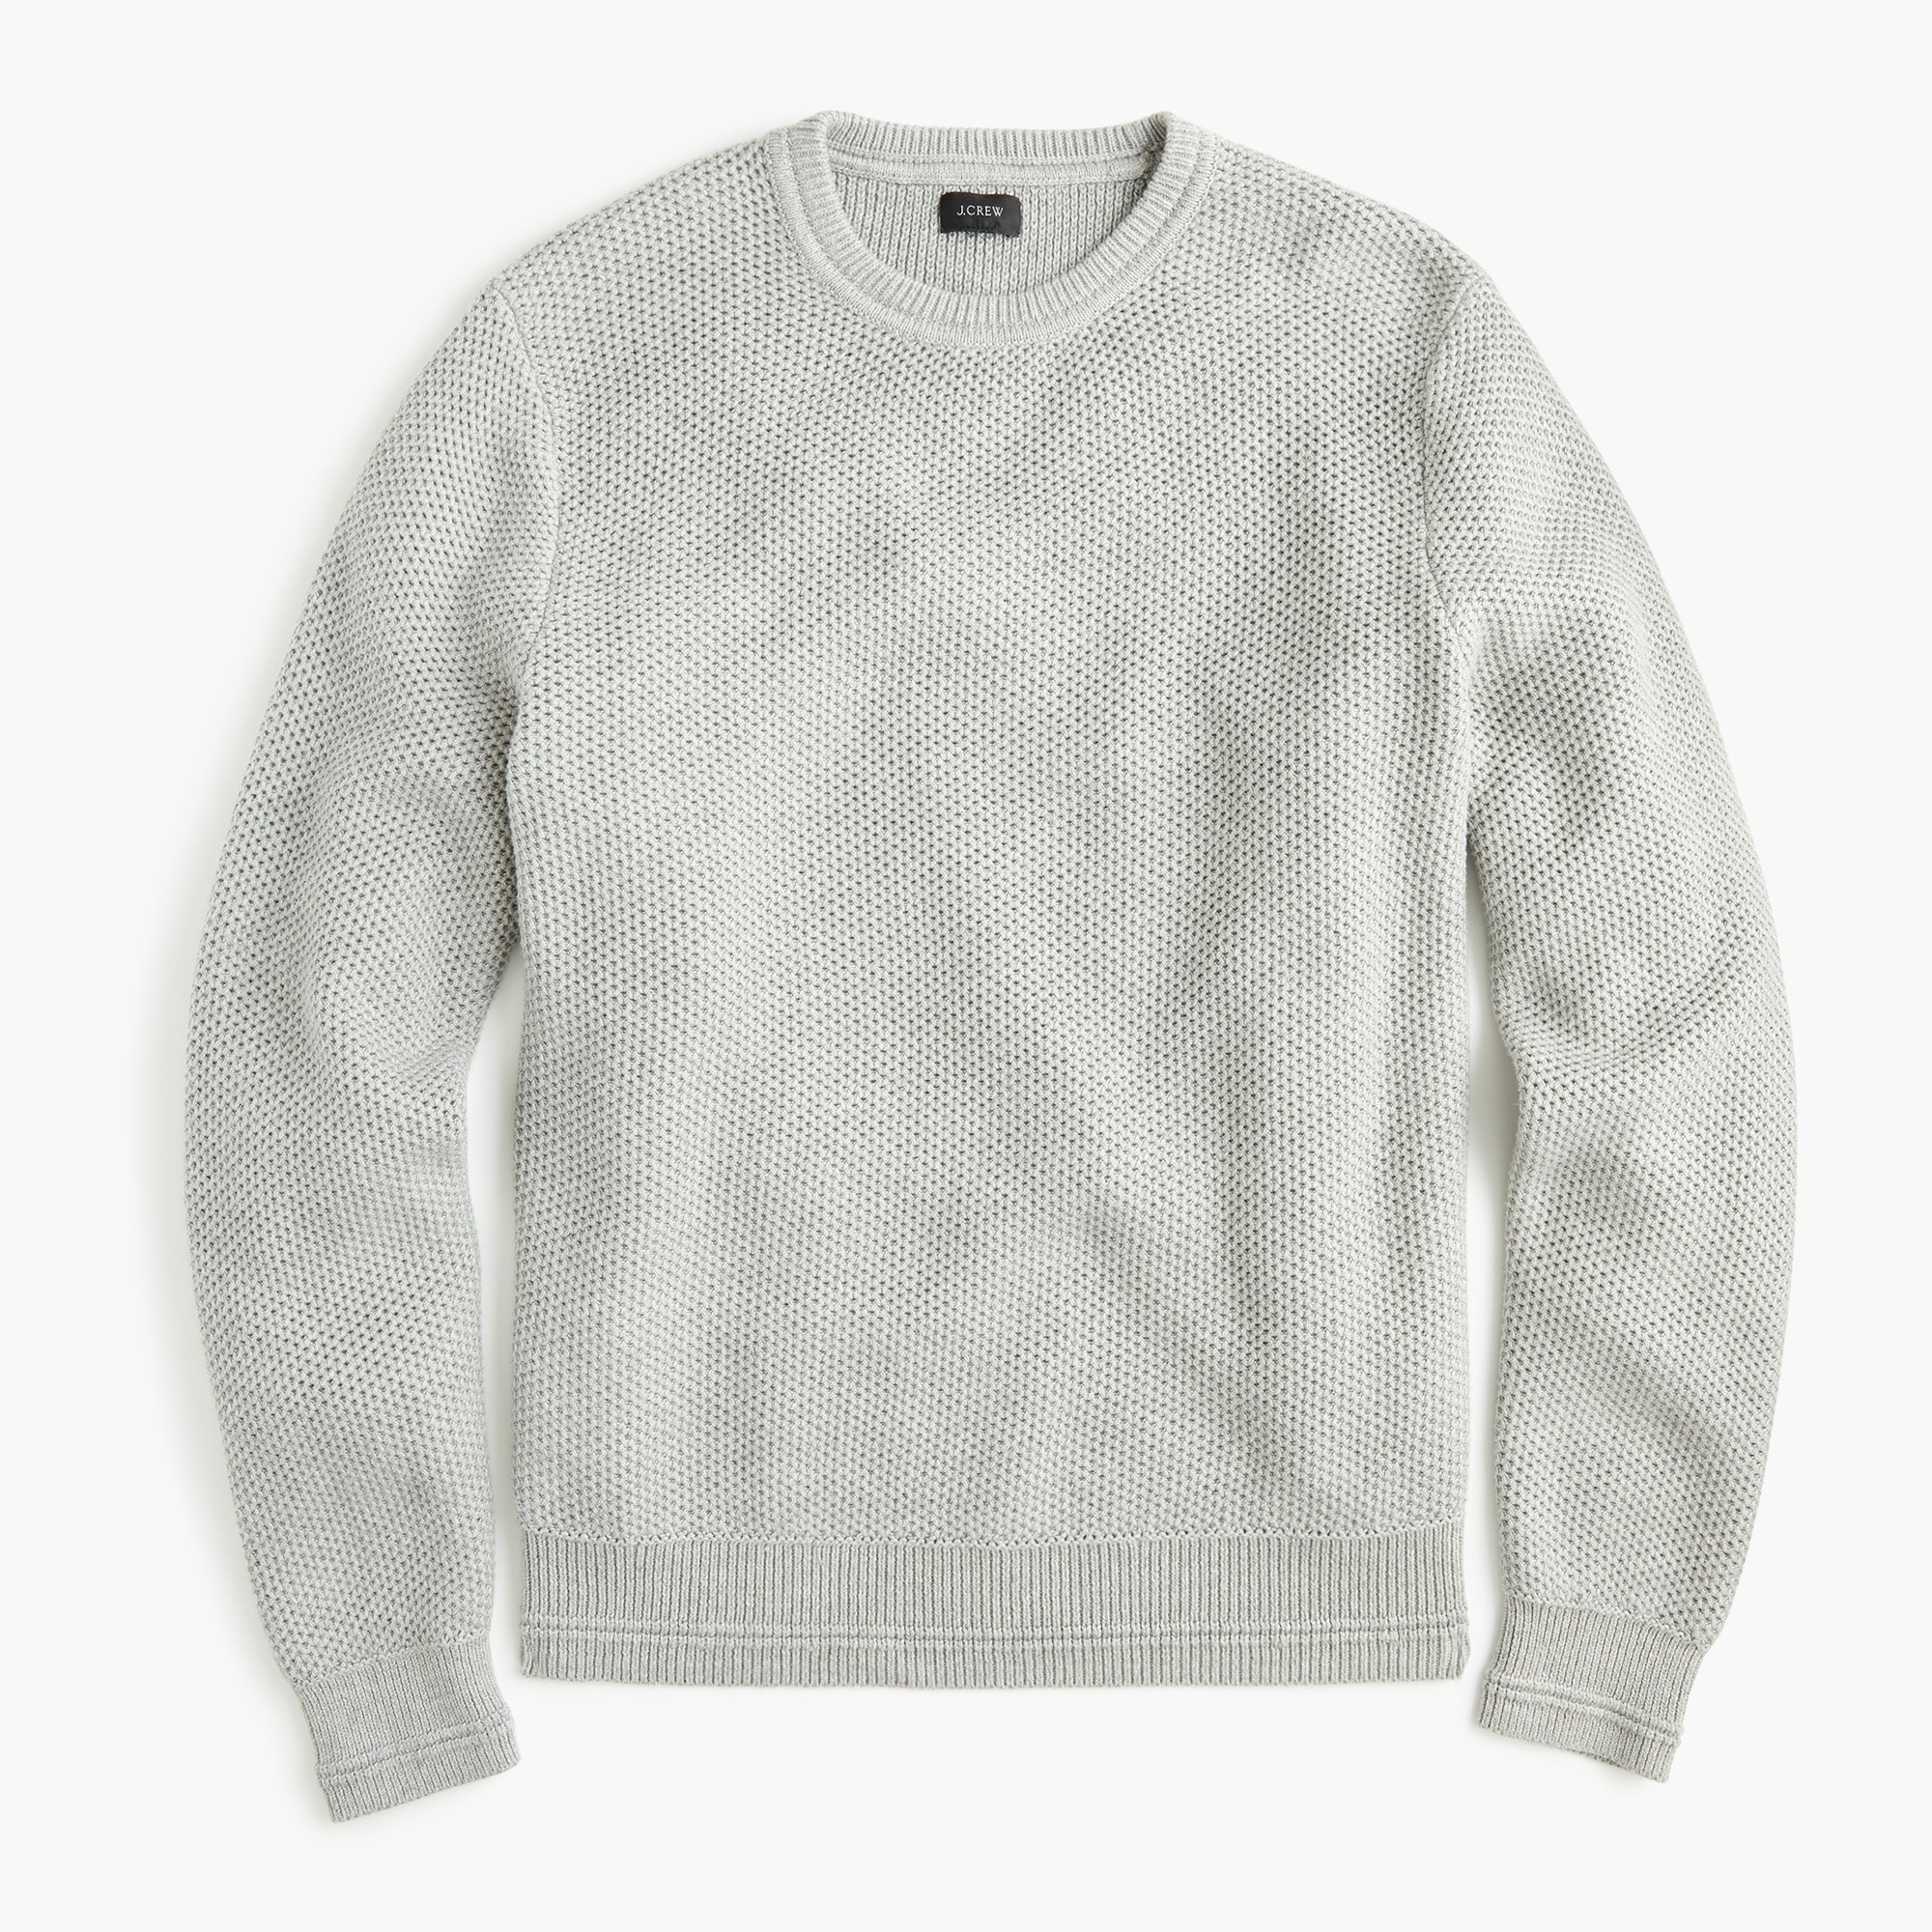 Image 1 for Cotton crewneck sweater in honeycomb knit